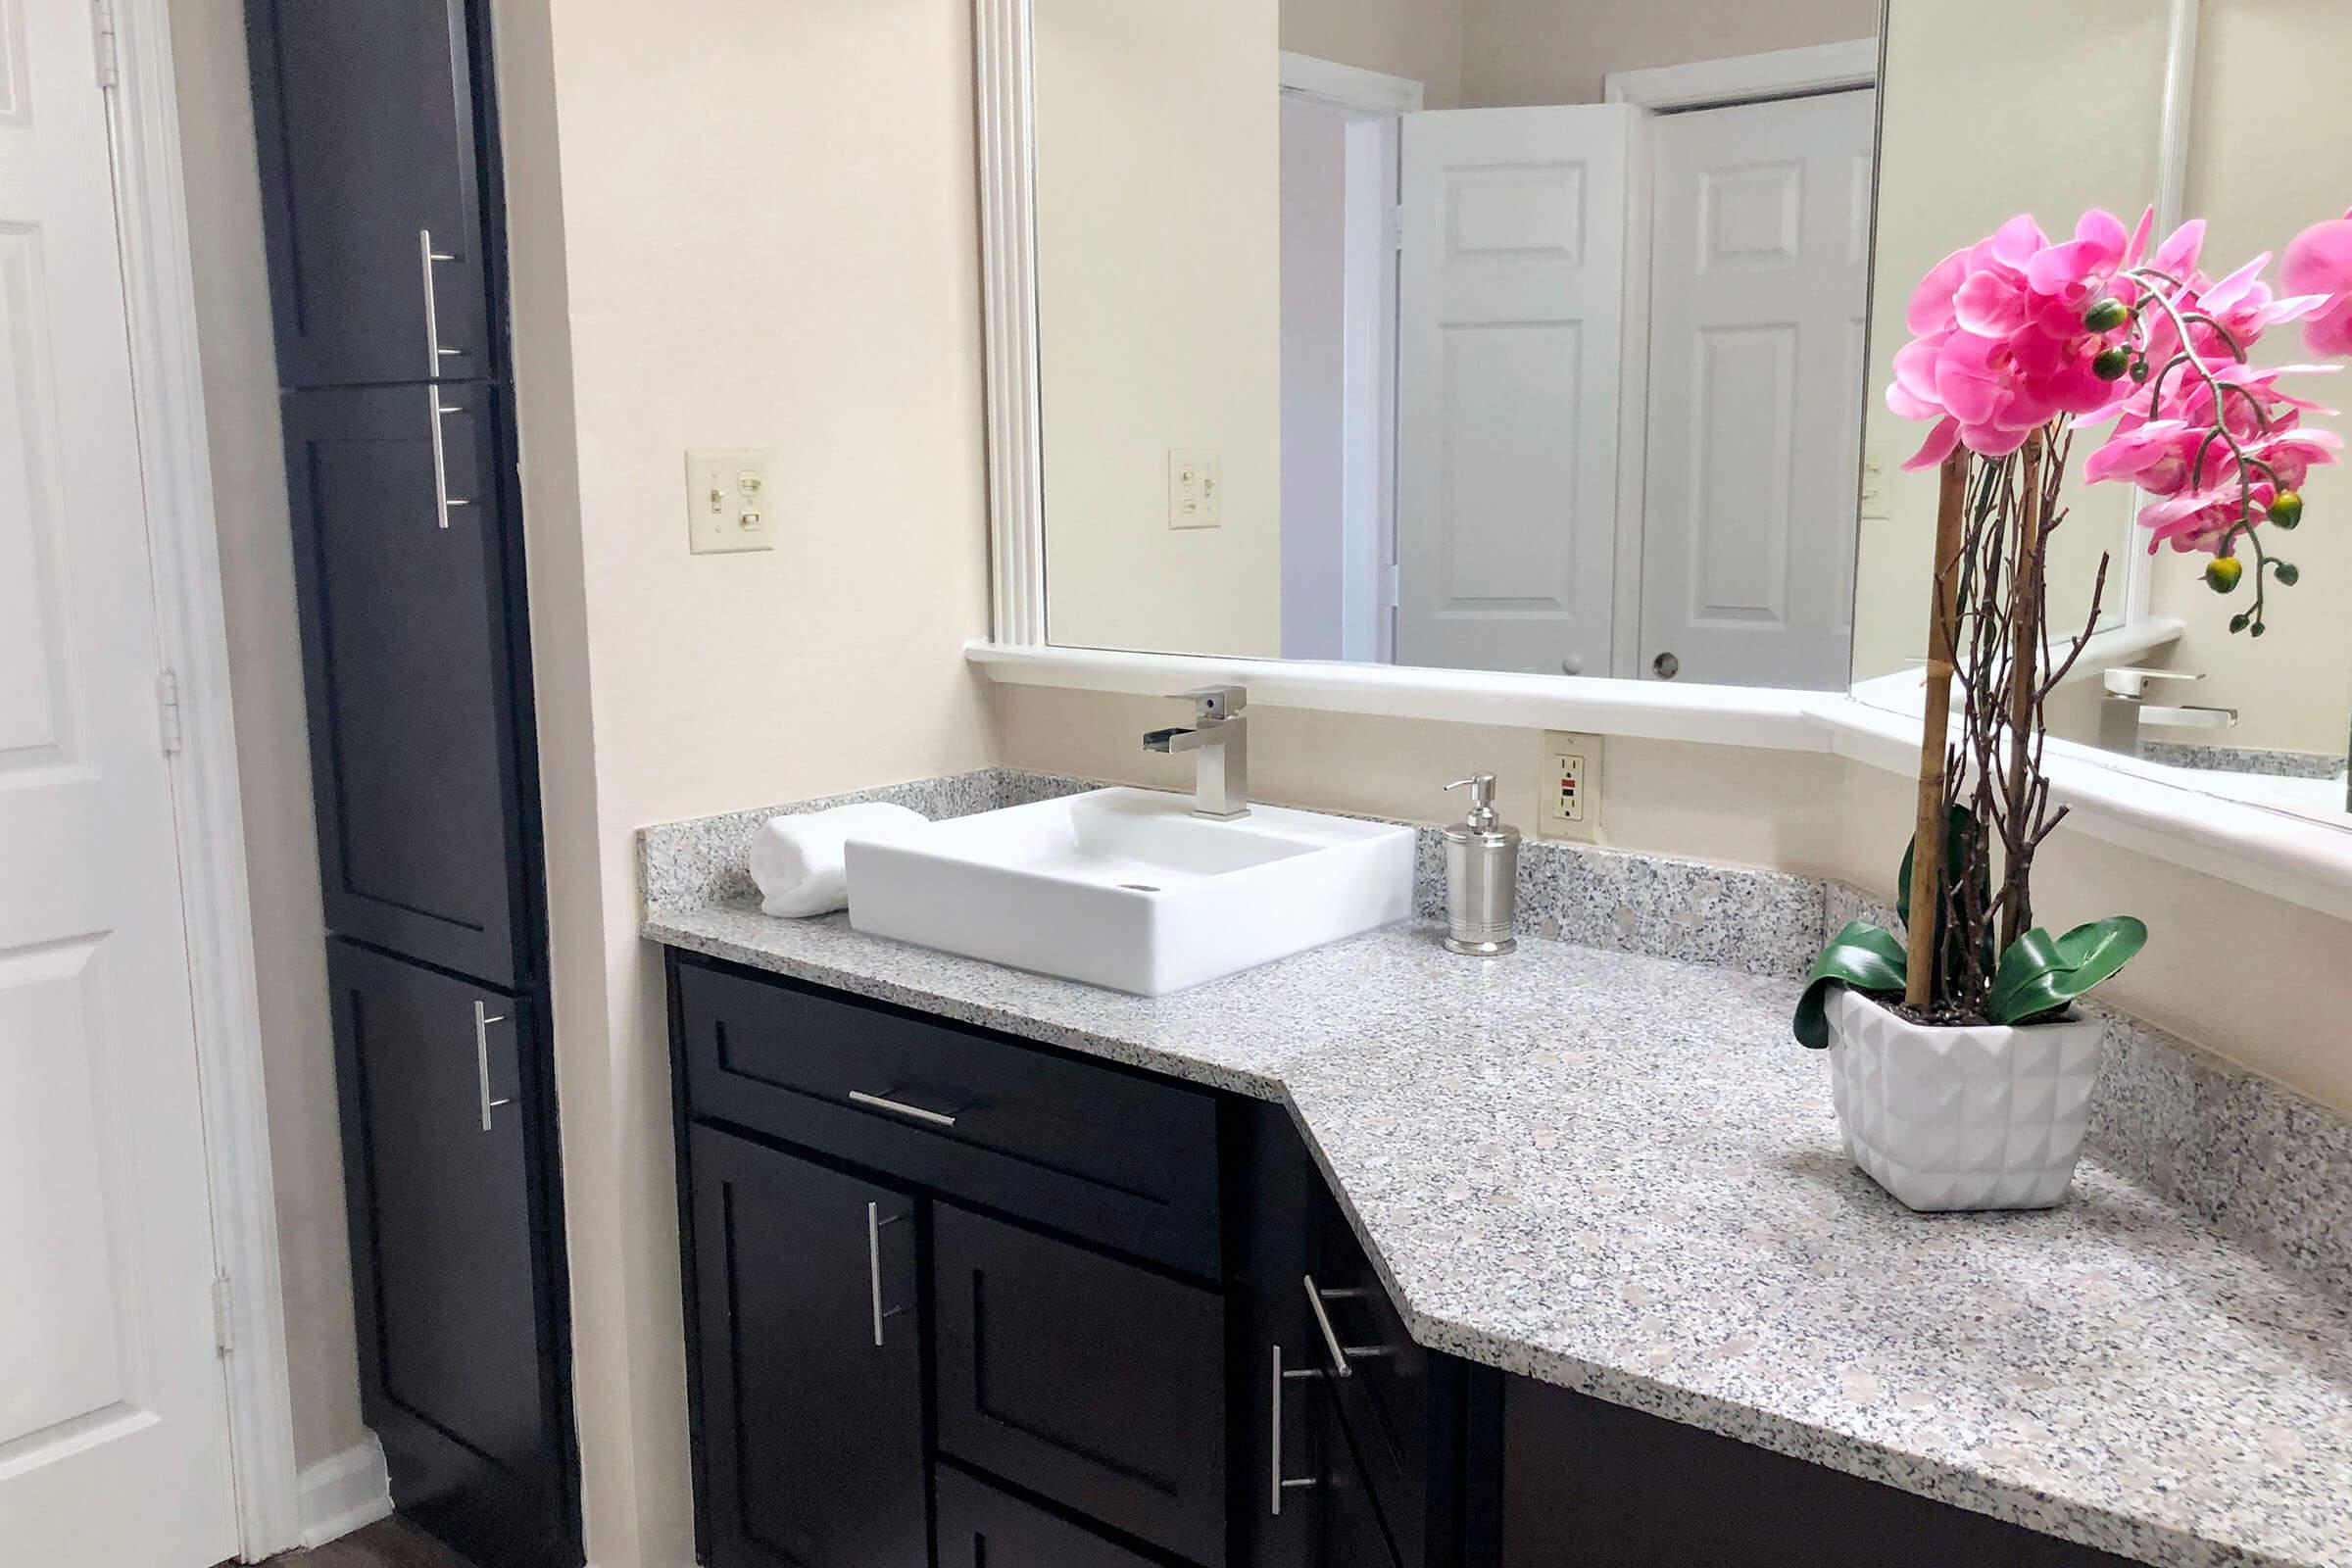 a vase of flowers next to a sink